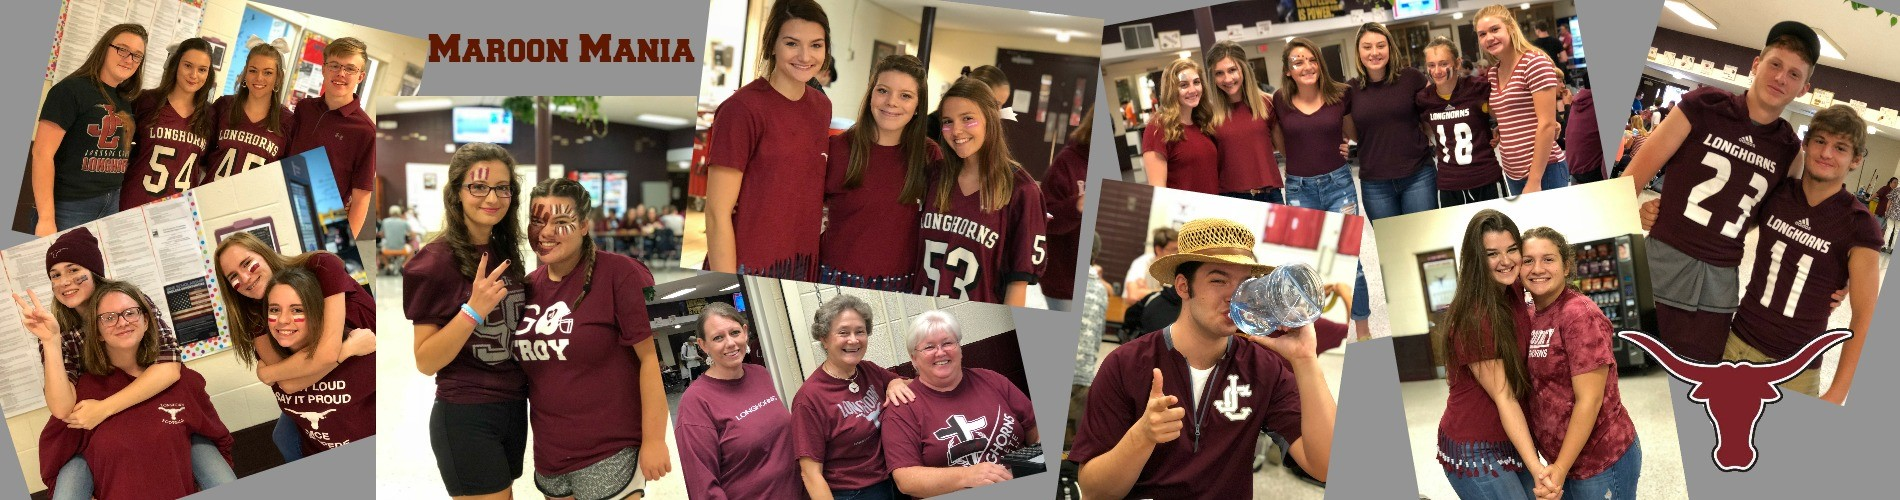 Students in maroon for homecoming.